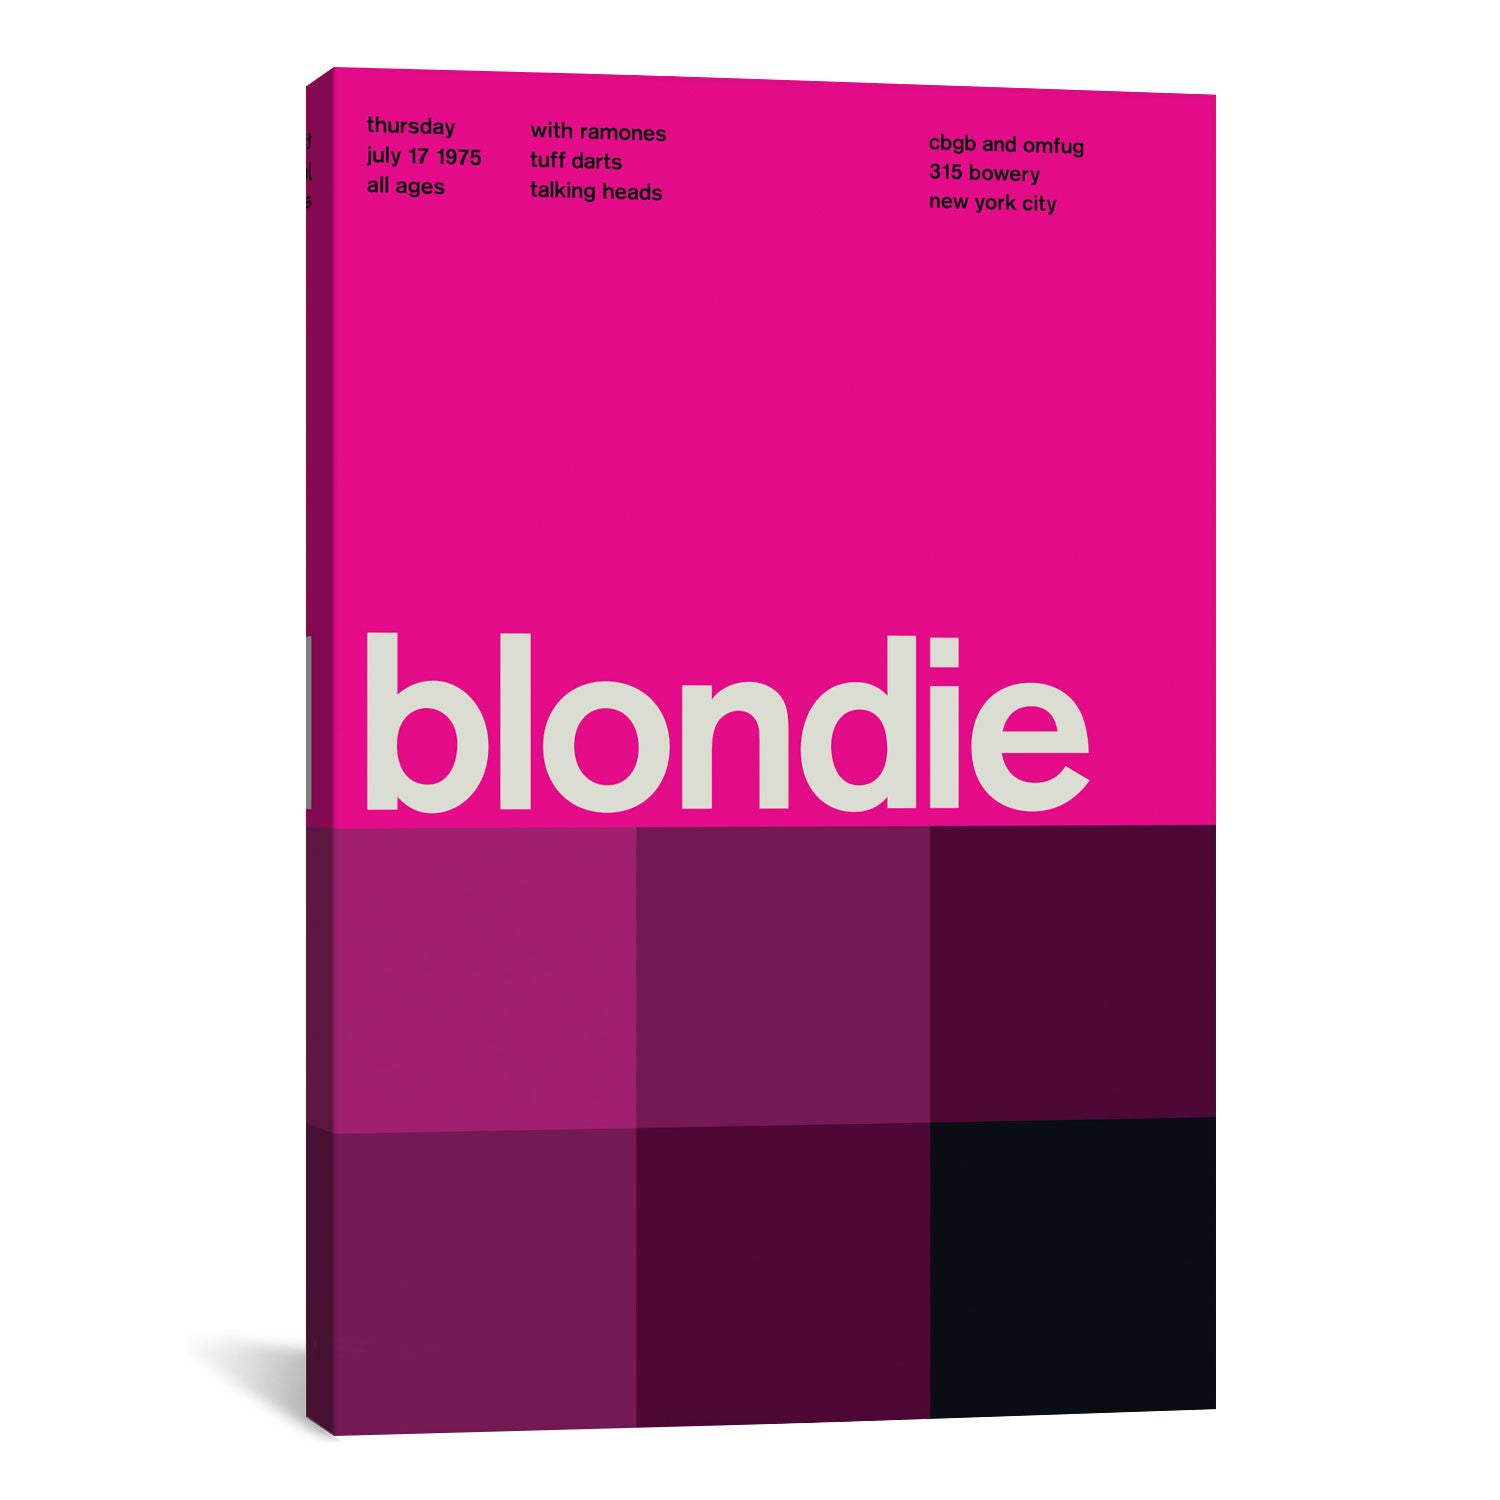 Swissted BLONDIE AT CBGB & OMFUG: July 17th, 1975